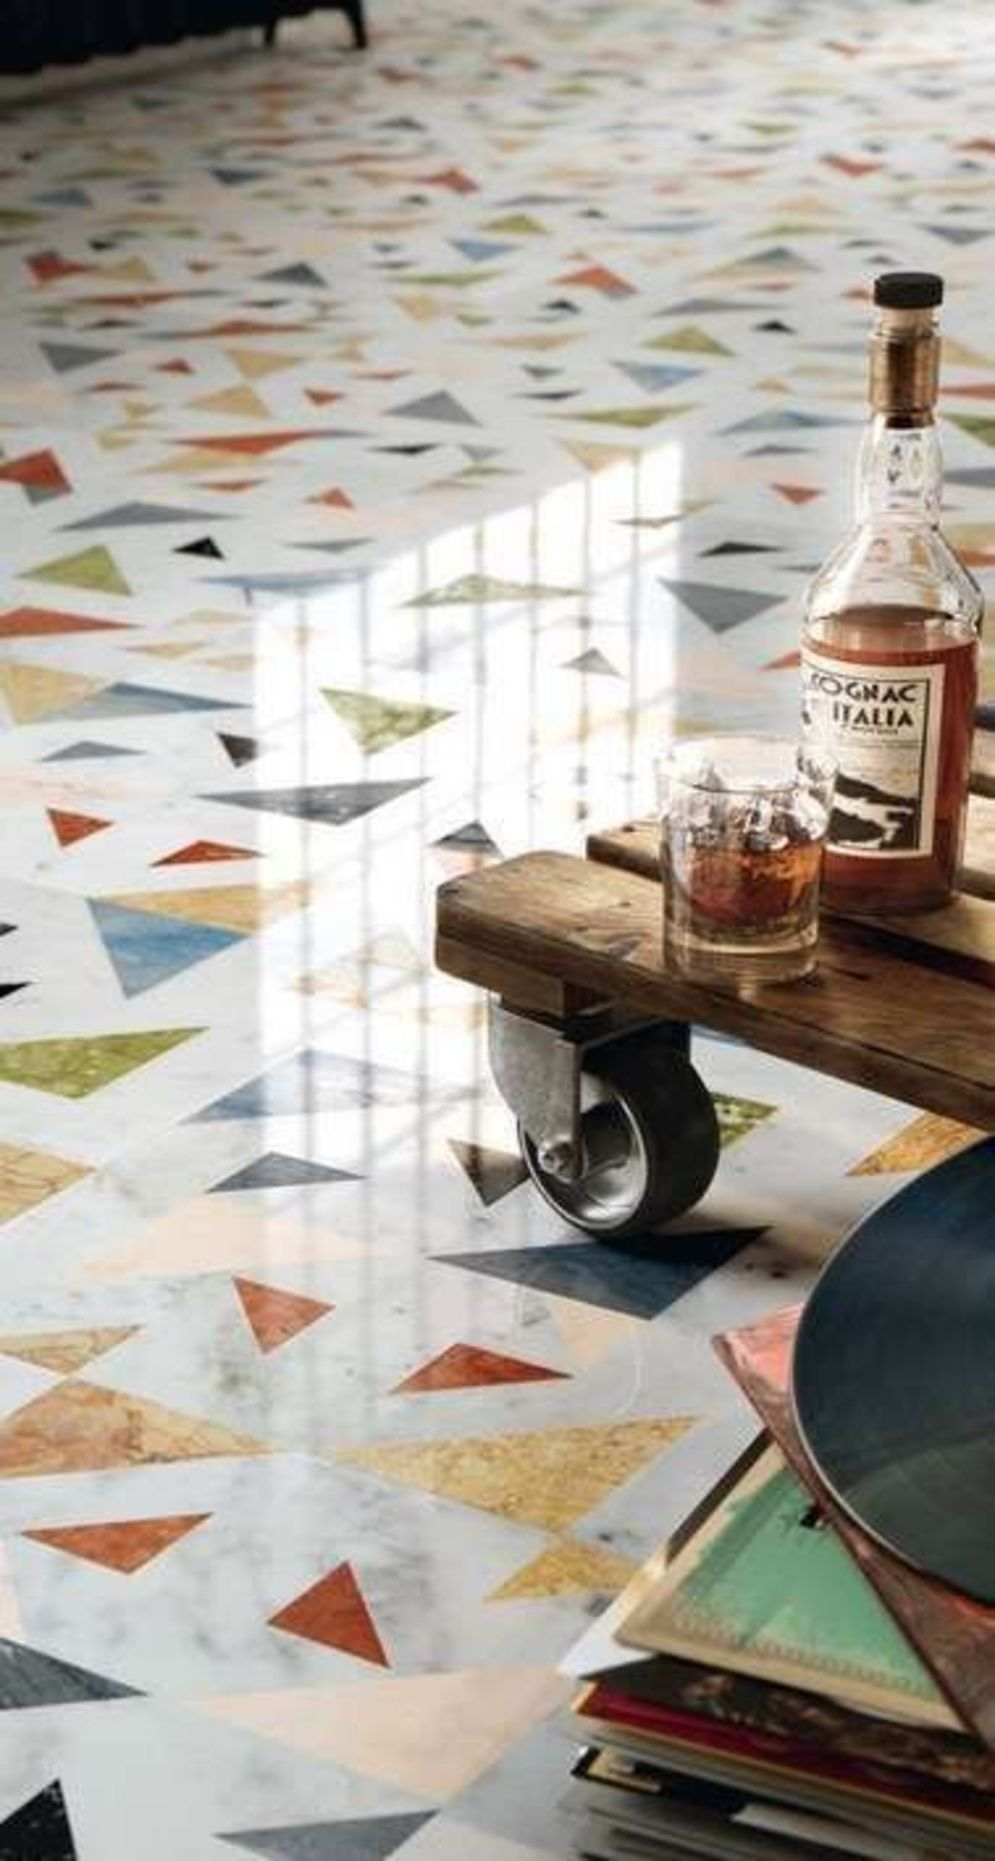 Amazing terrazzo decoration revival giving a cozy look in a warm and friendly interior scheme Image 6